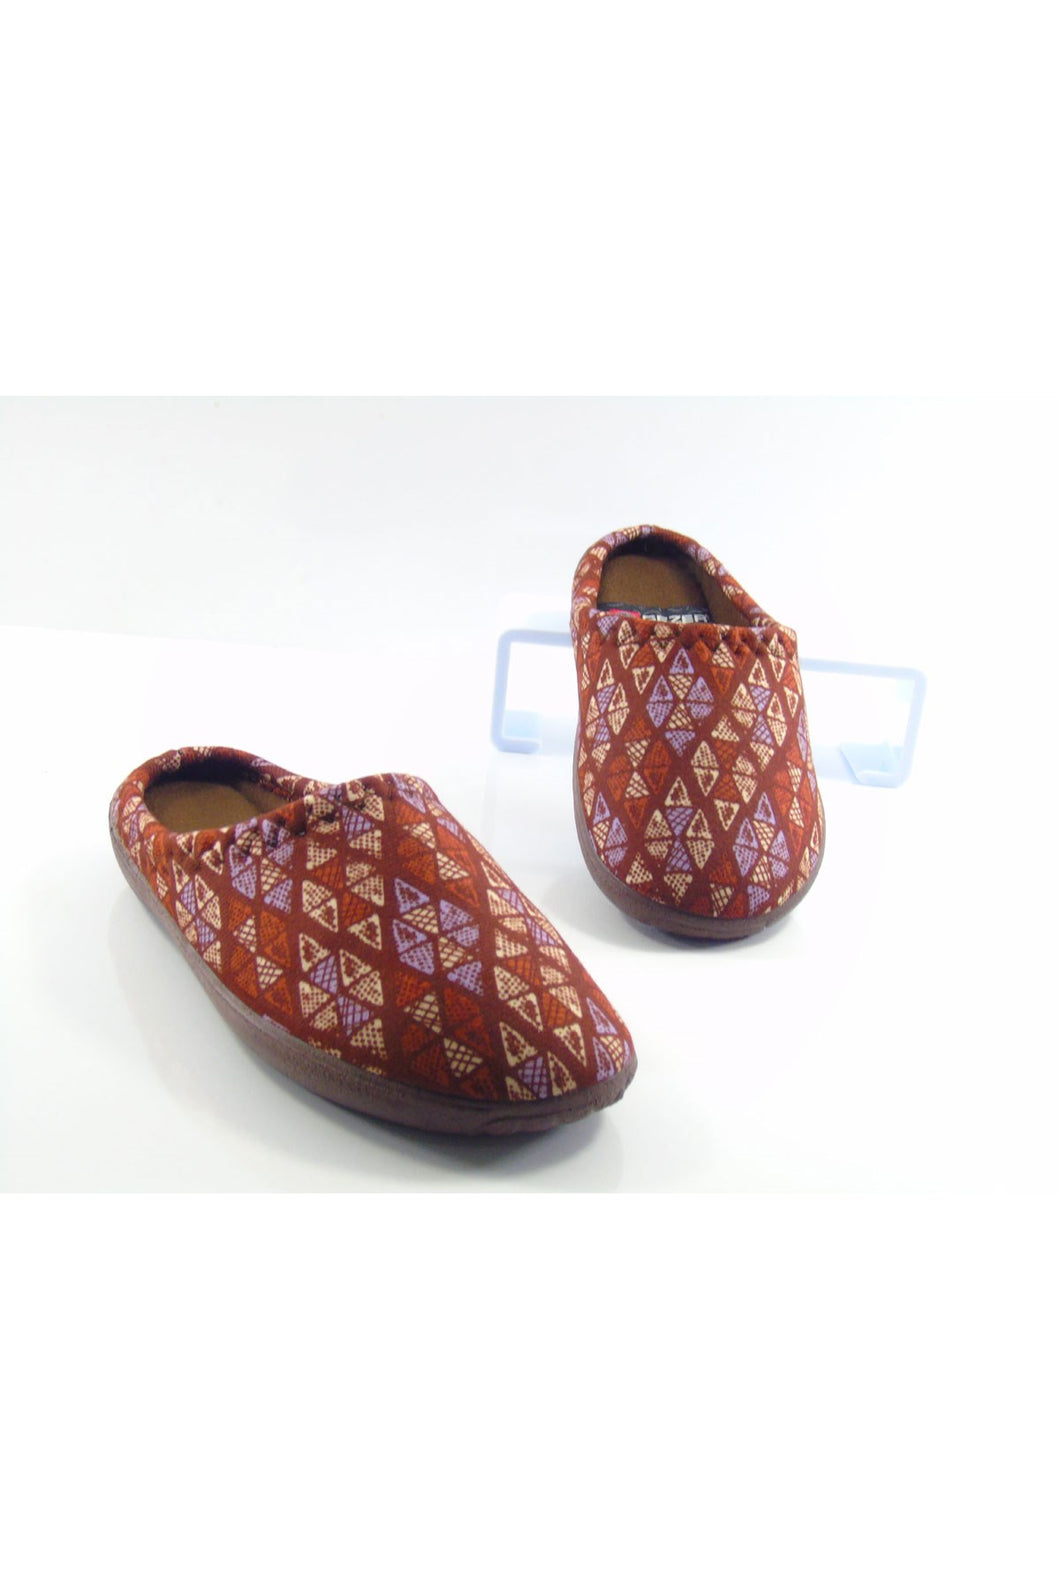 Women's Patterned Brown Winter House Slippers